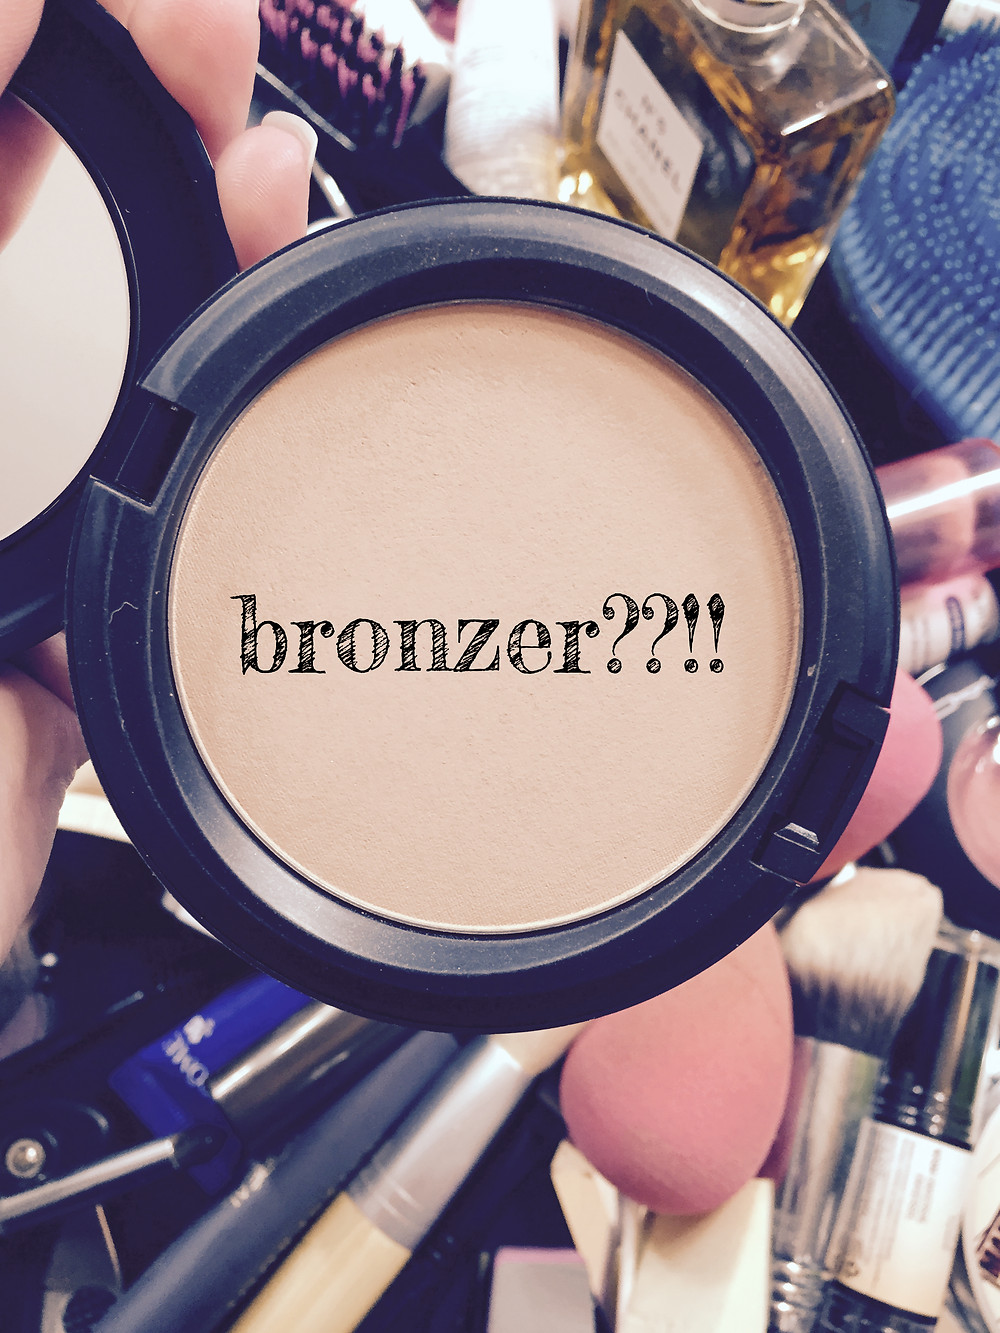 contour how to full coverage makeup how to everyday makeup look smokey eye look highlight foundation brows brow wiz youthful how to makeup tutorials, bronzer